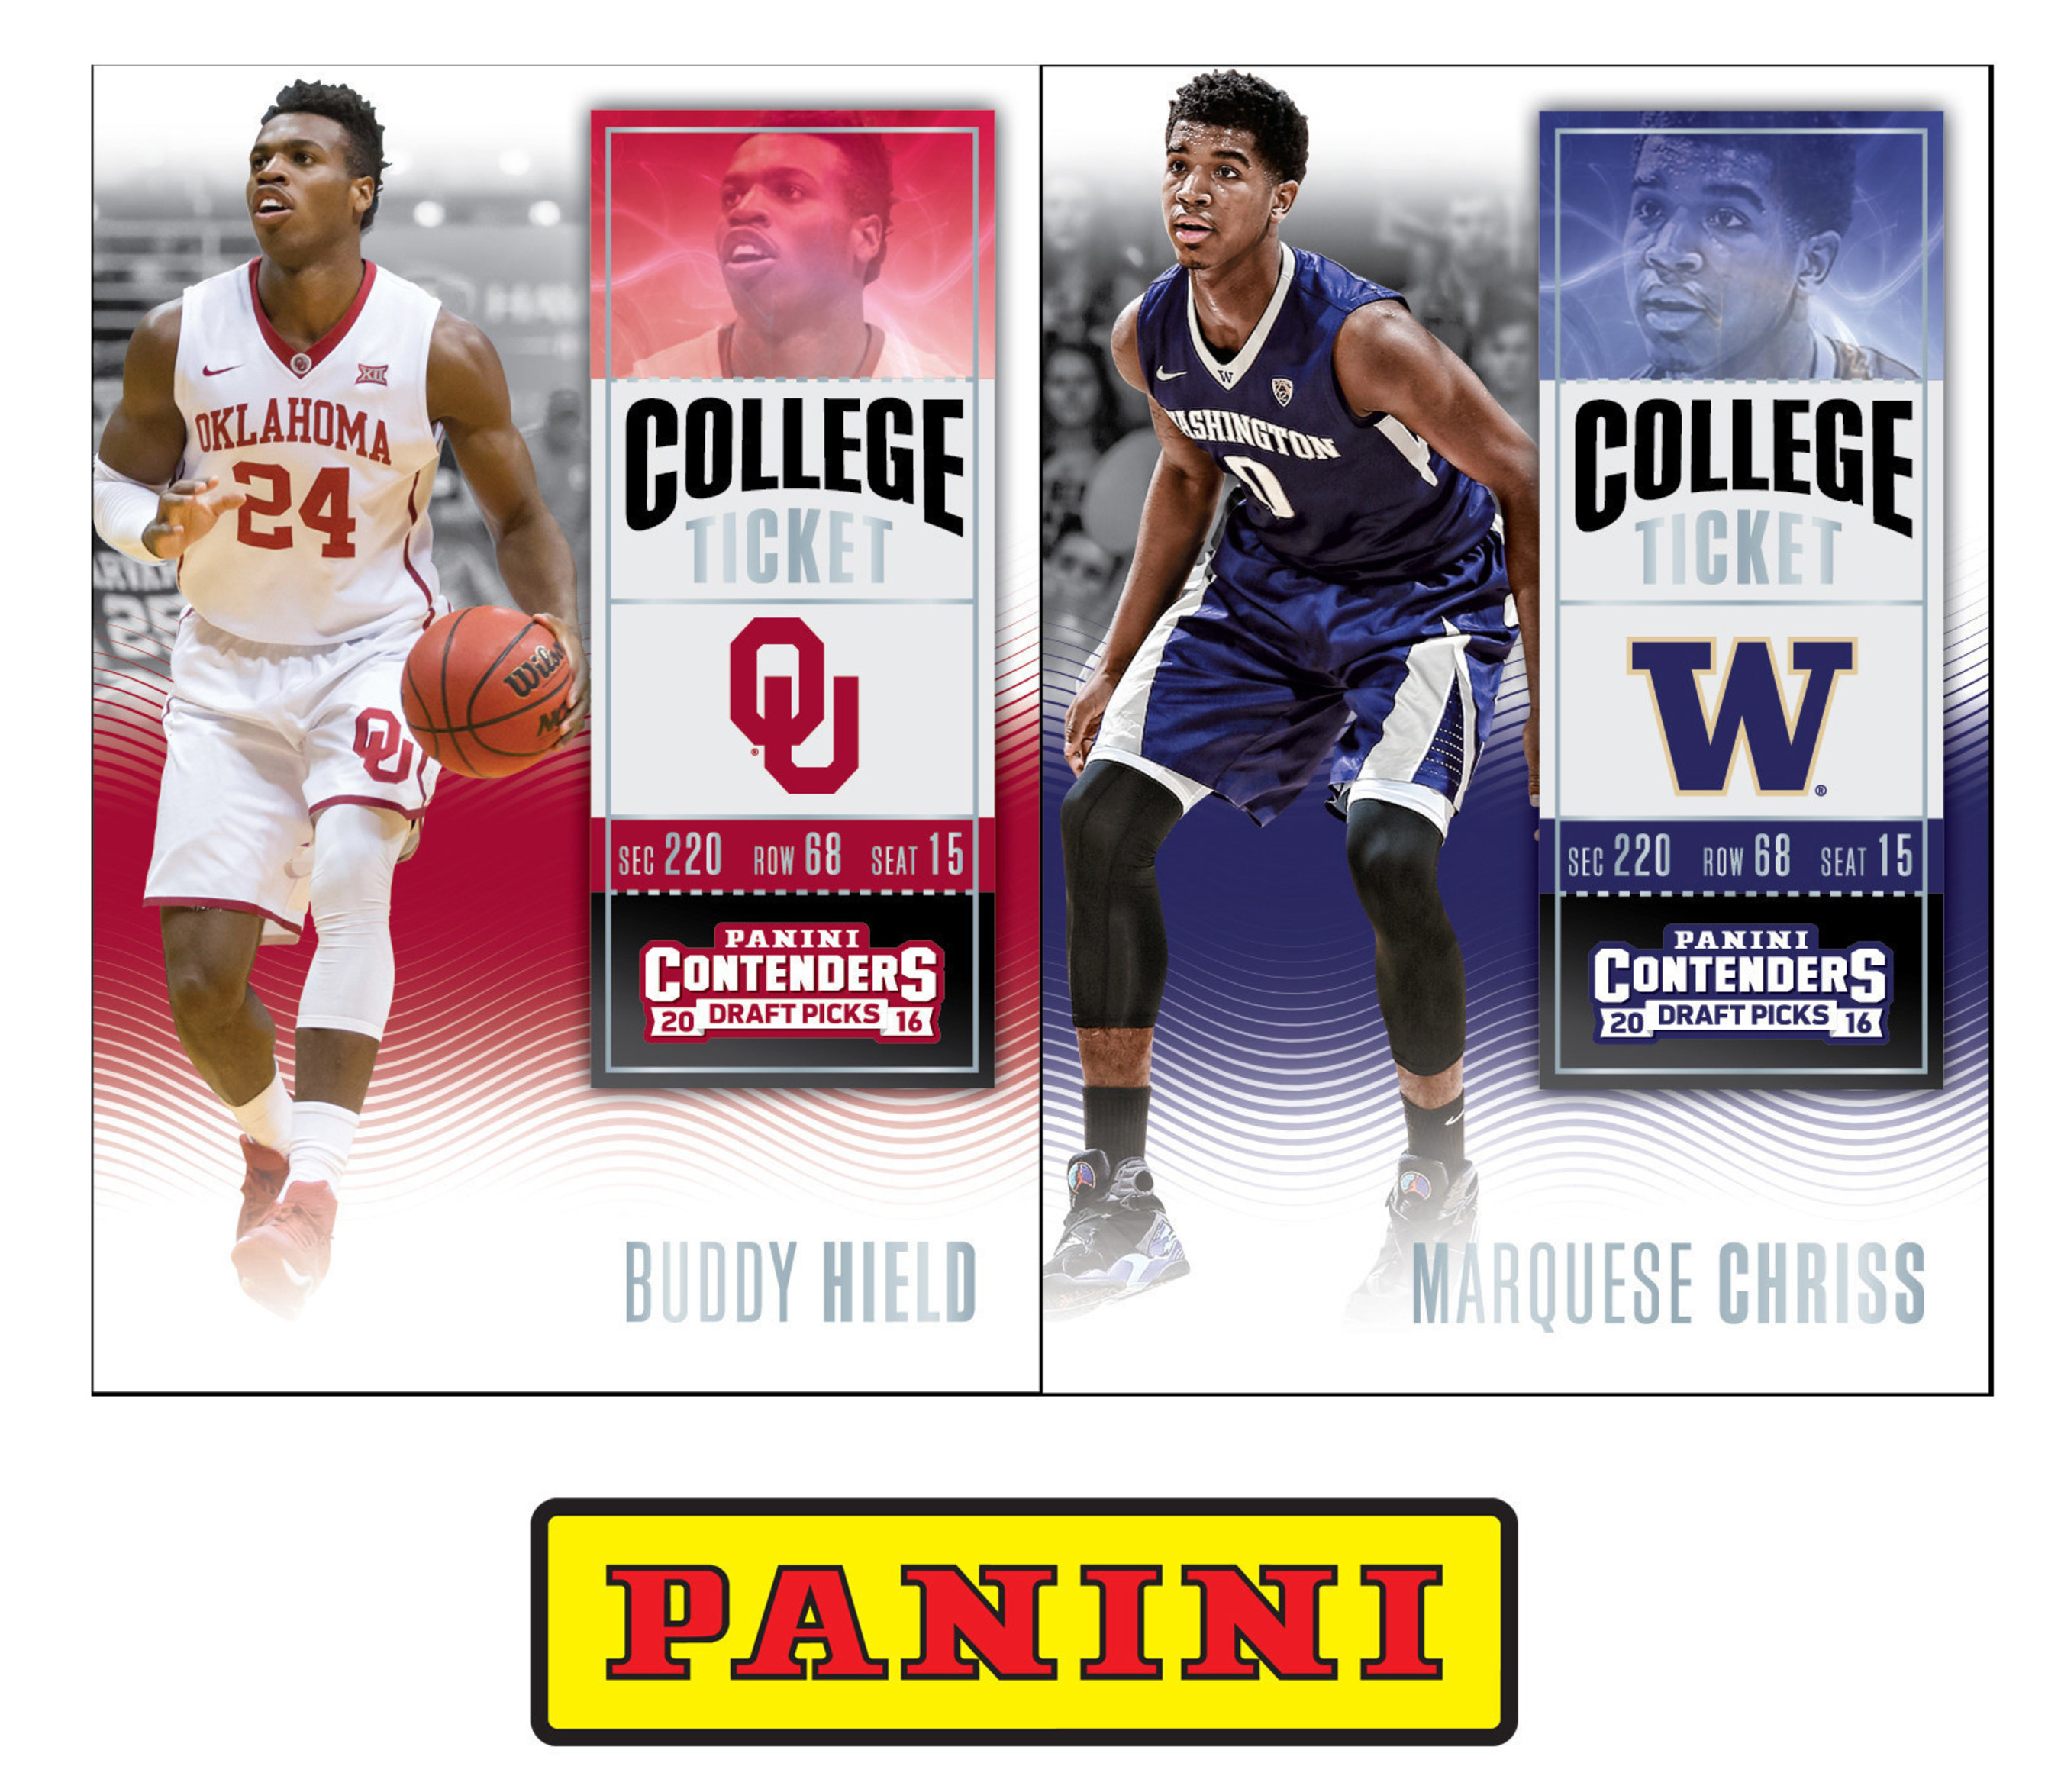 d92e0df4c43d Panini America Inks Exclusive Autograph Trading Card   Memorabilia Deals  With Top NBA Draft Prospects Marquese